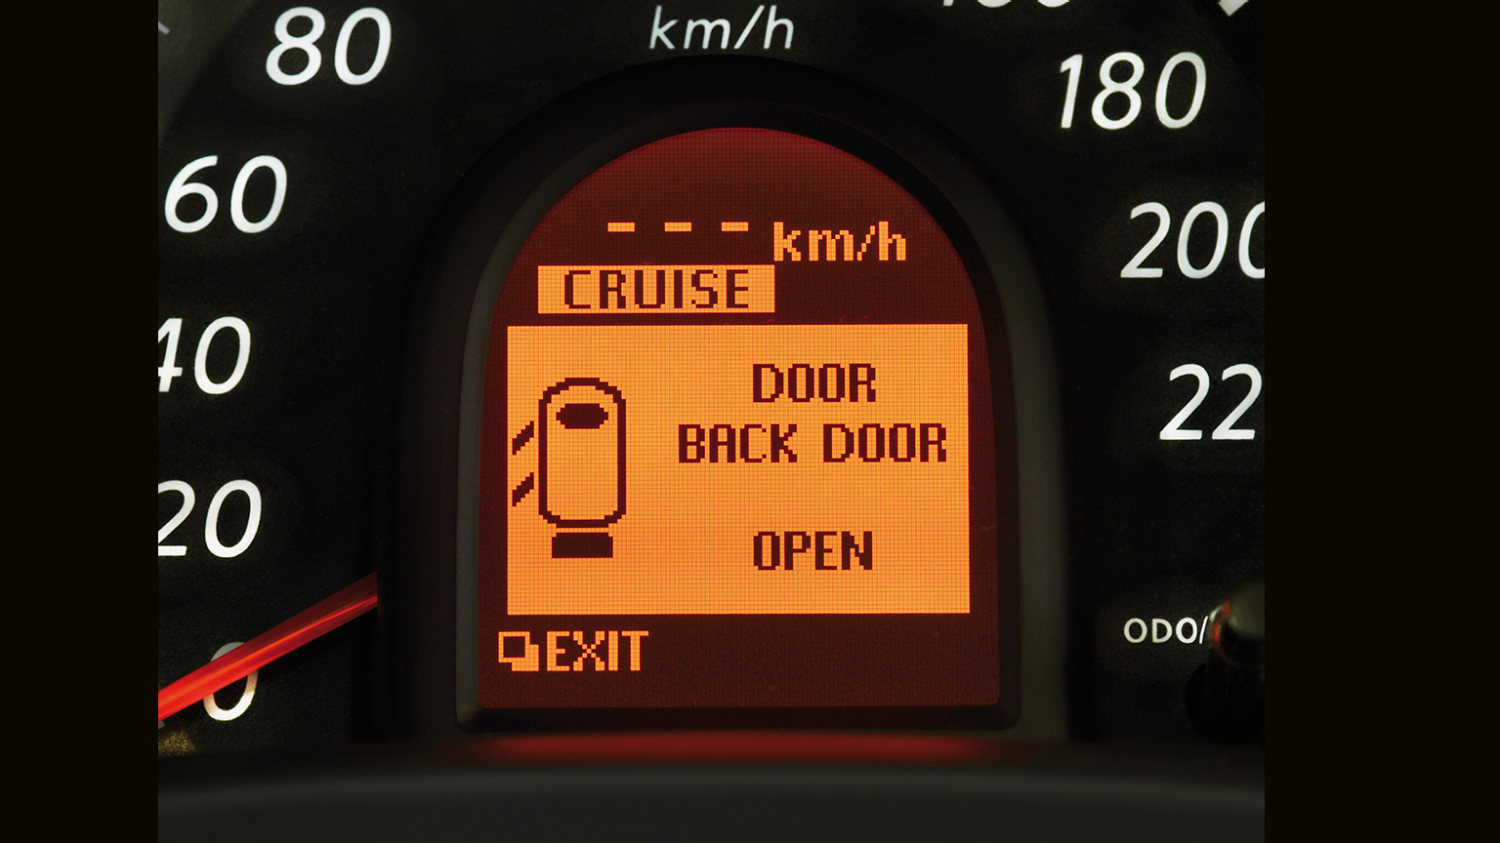 Nissan Micra - Multi-function display - Back door open alert